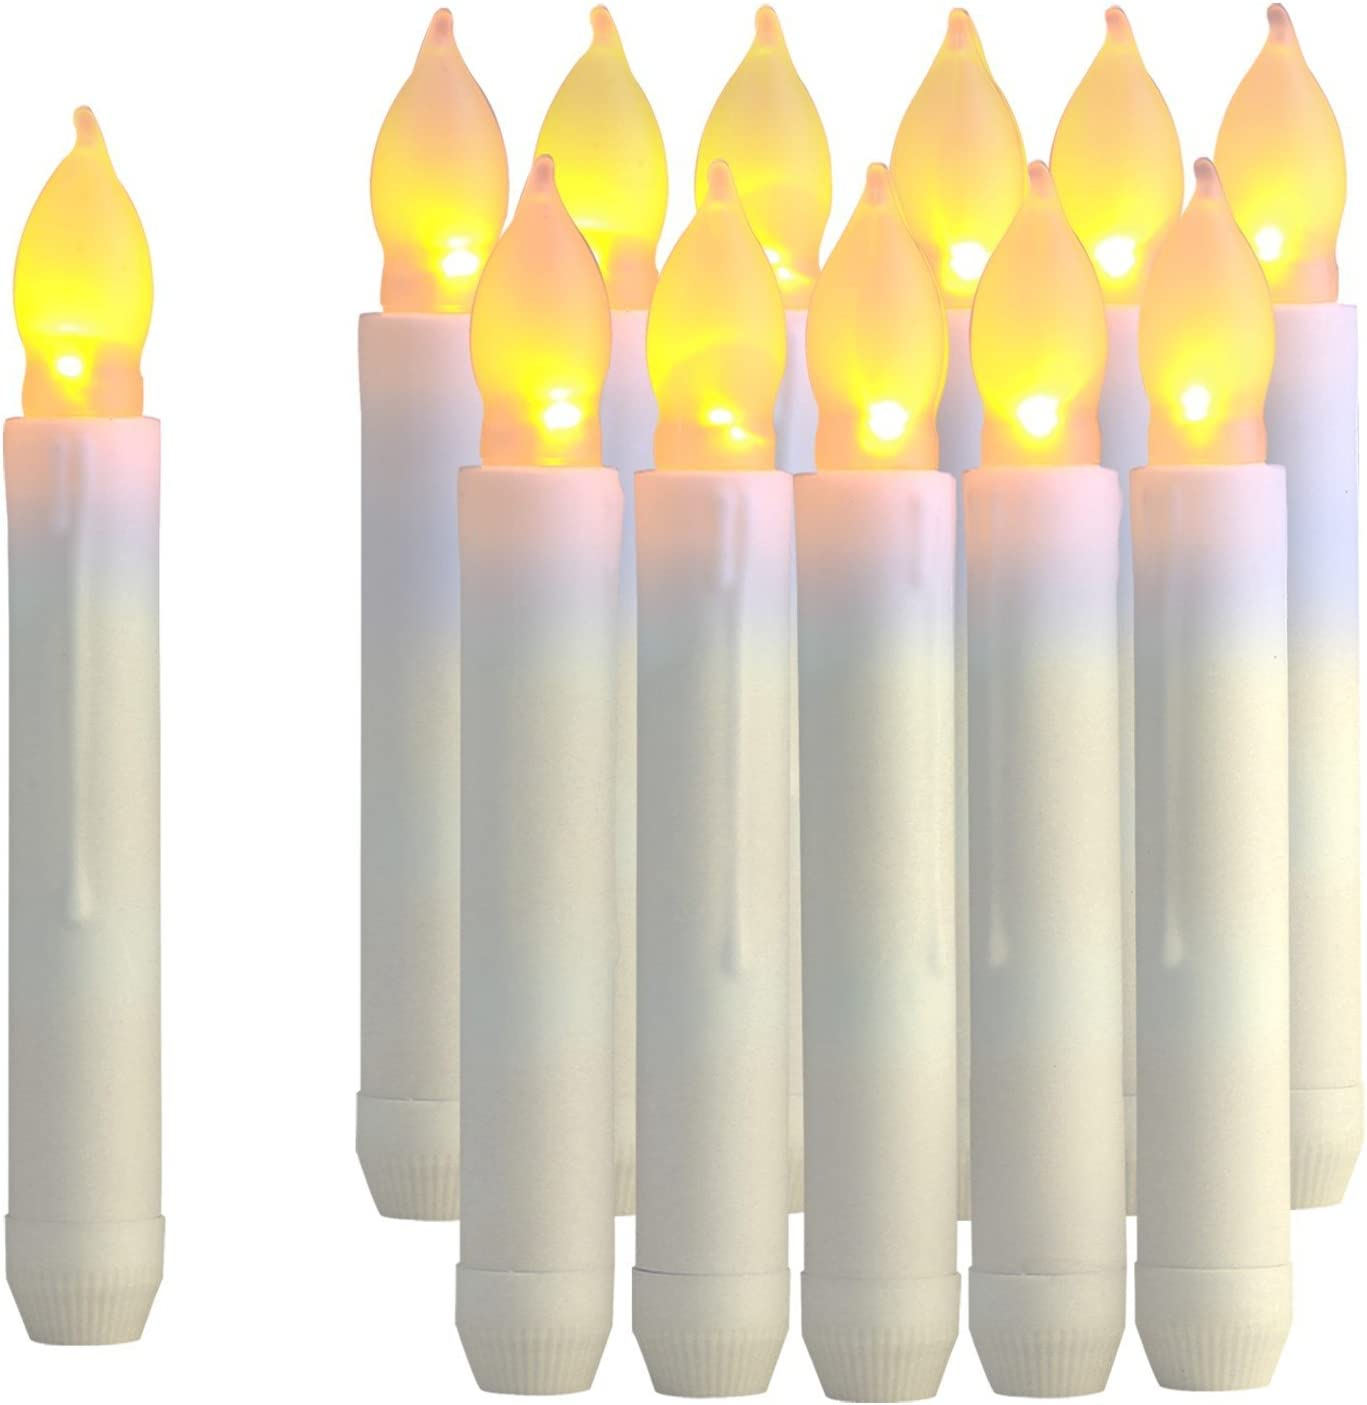 Raycare 12PCS LED Taper Candle Lights, Harry Potter Floating Candles, Battery Operated Tapered Candles for Themed Party, Church, Christmas Decorations